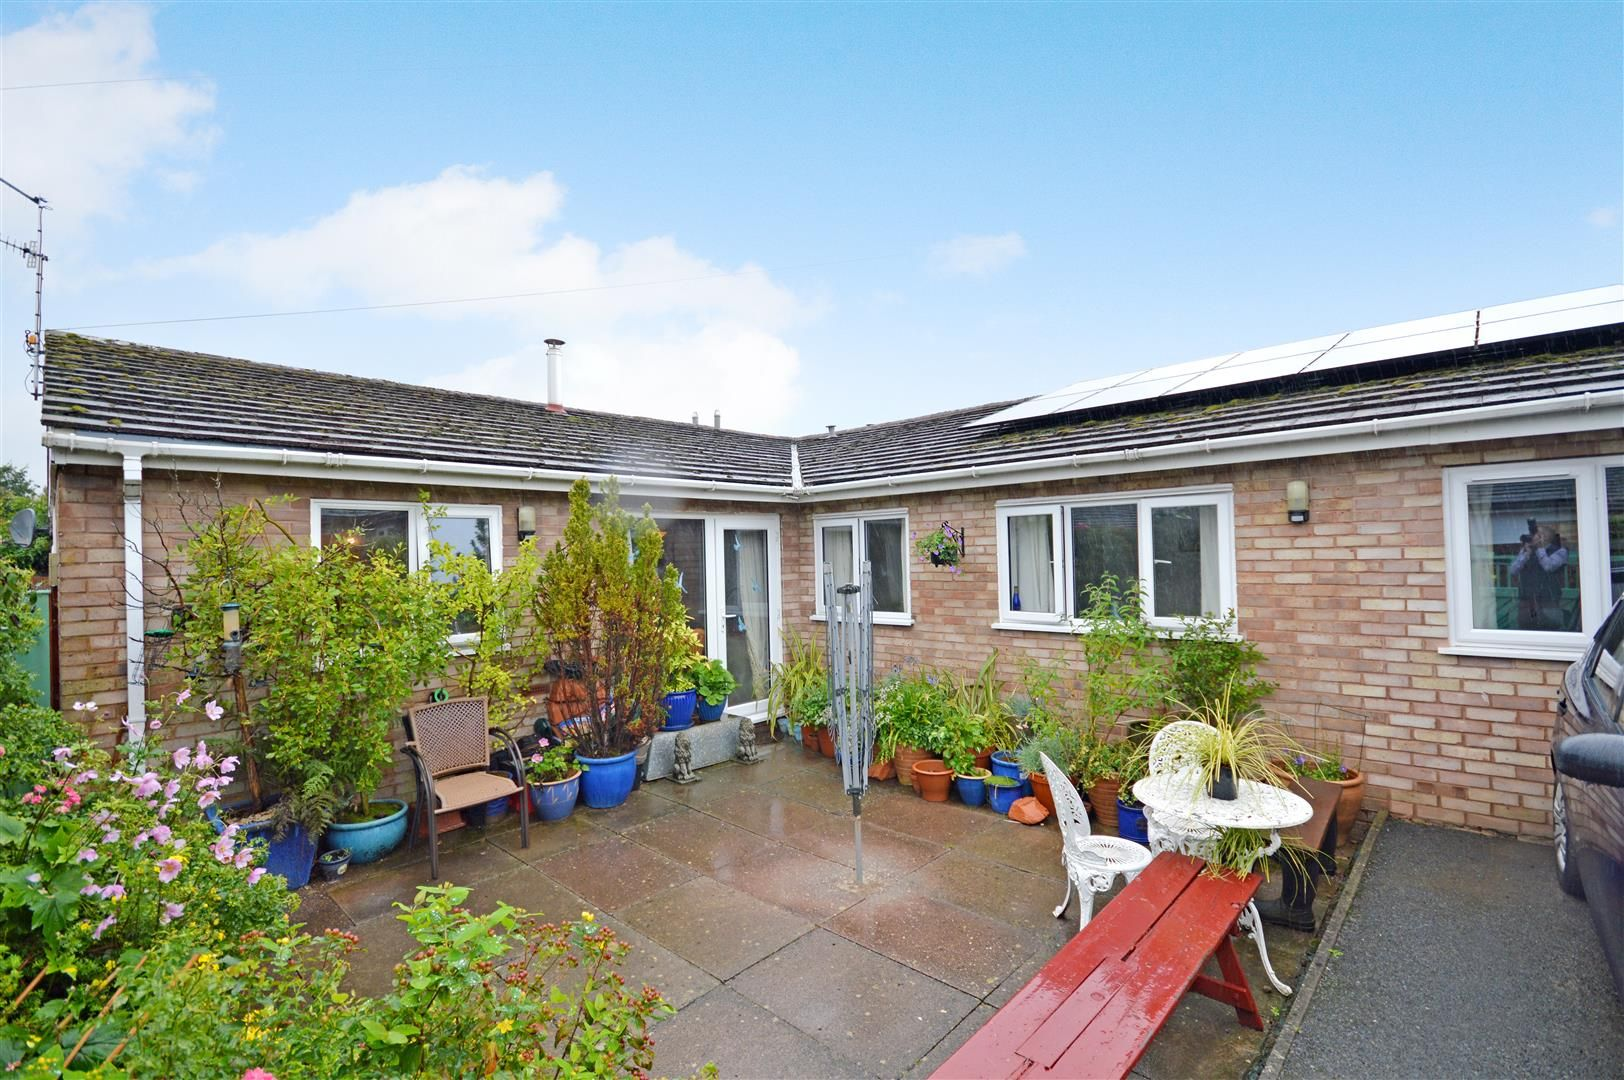 3 bed semi-detached bungalow for sale in Peterchurch 1